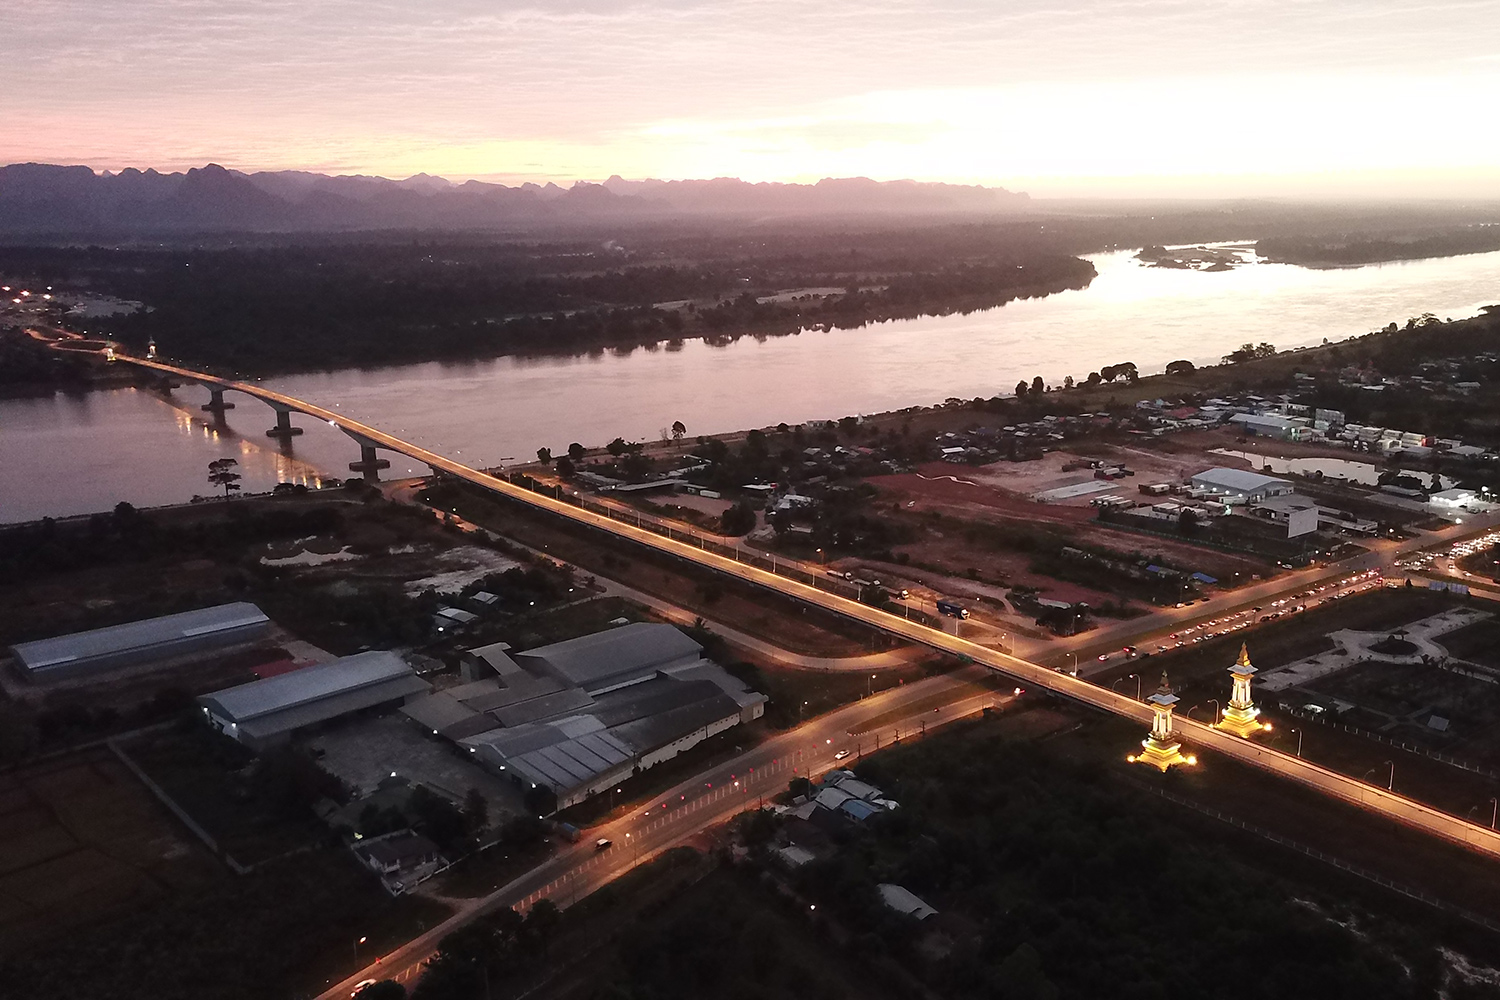 An aerial view of Nakhon Phanom, one of the secondary provinces under a Tourism Authority of Thailand plan to promote tourism. (Photo by Pattanapong Sripiachai)